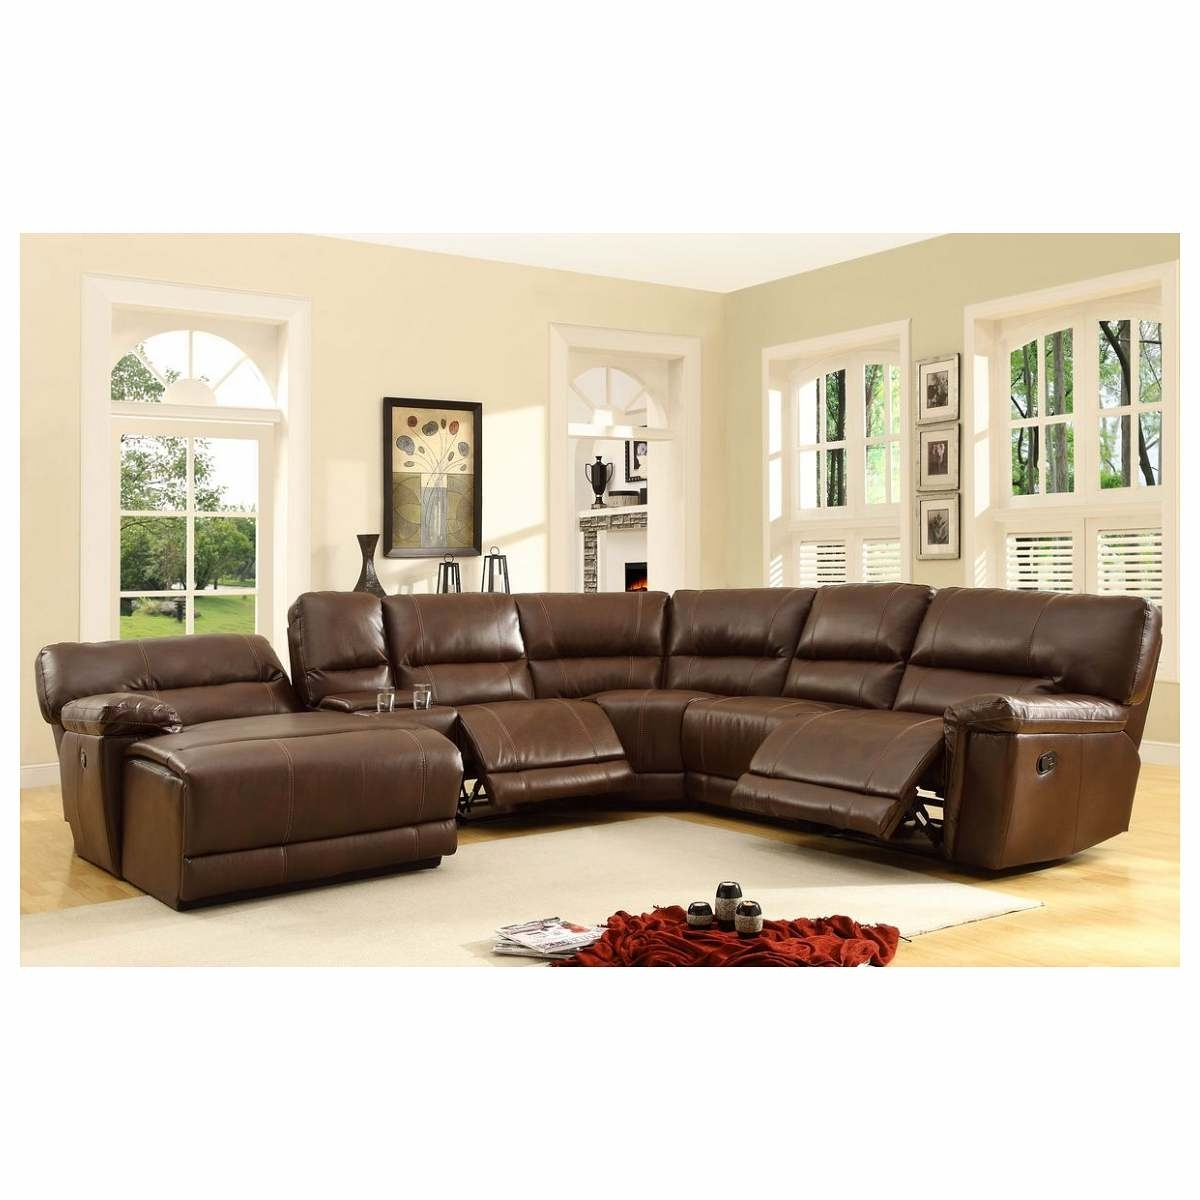 2017 6 Pc Blythe Collection Brown Bonded Leather Match Upholstered with regard to 6 Piece Leather Sectional Sofas